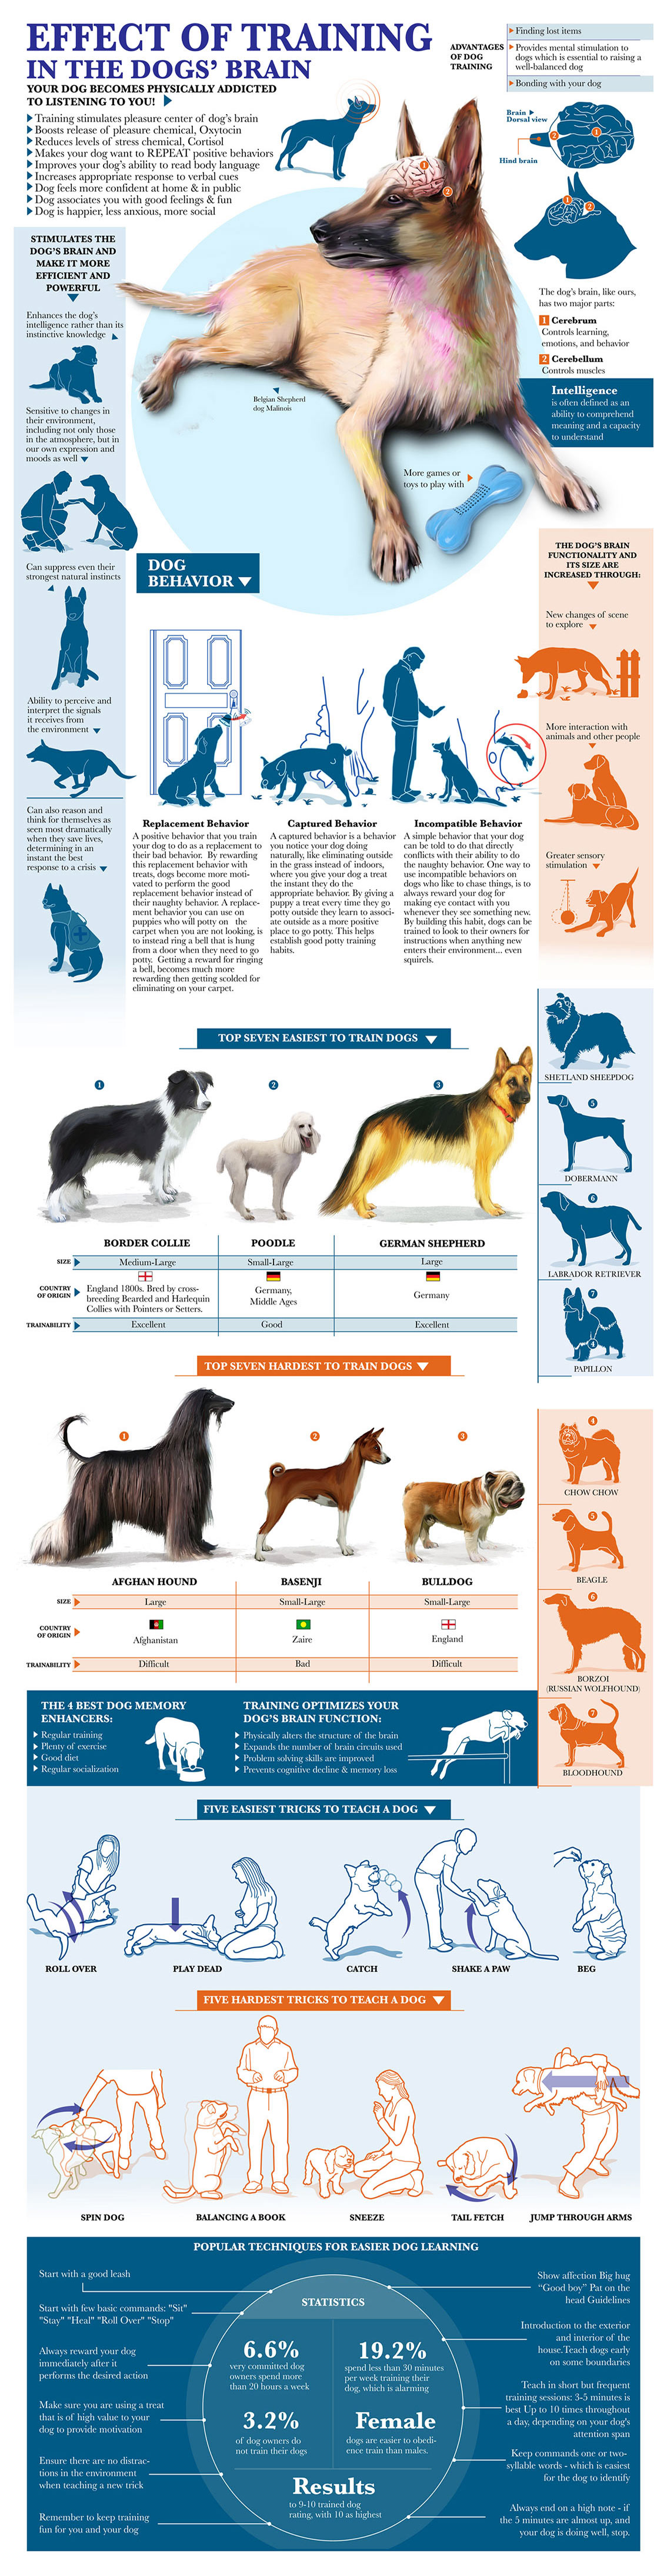 Benefits of Obedience Training for Dogs Infographic